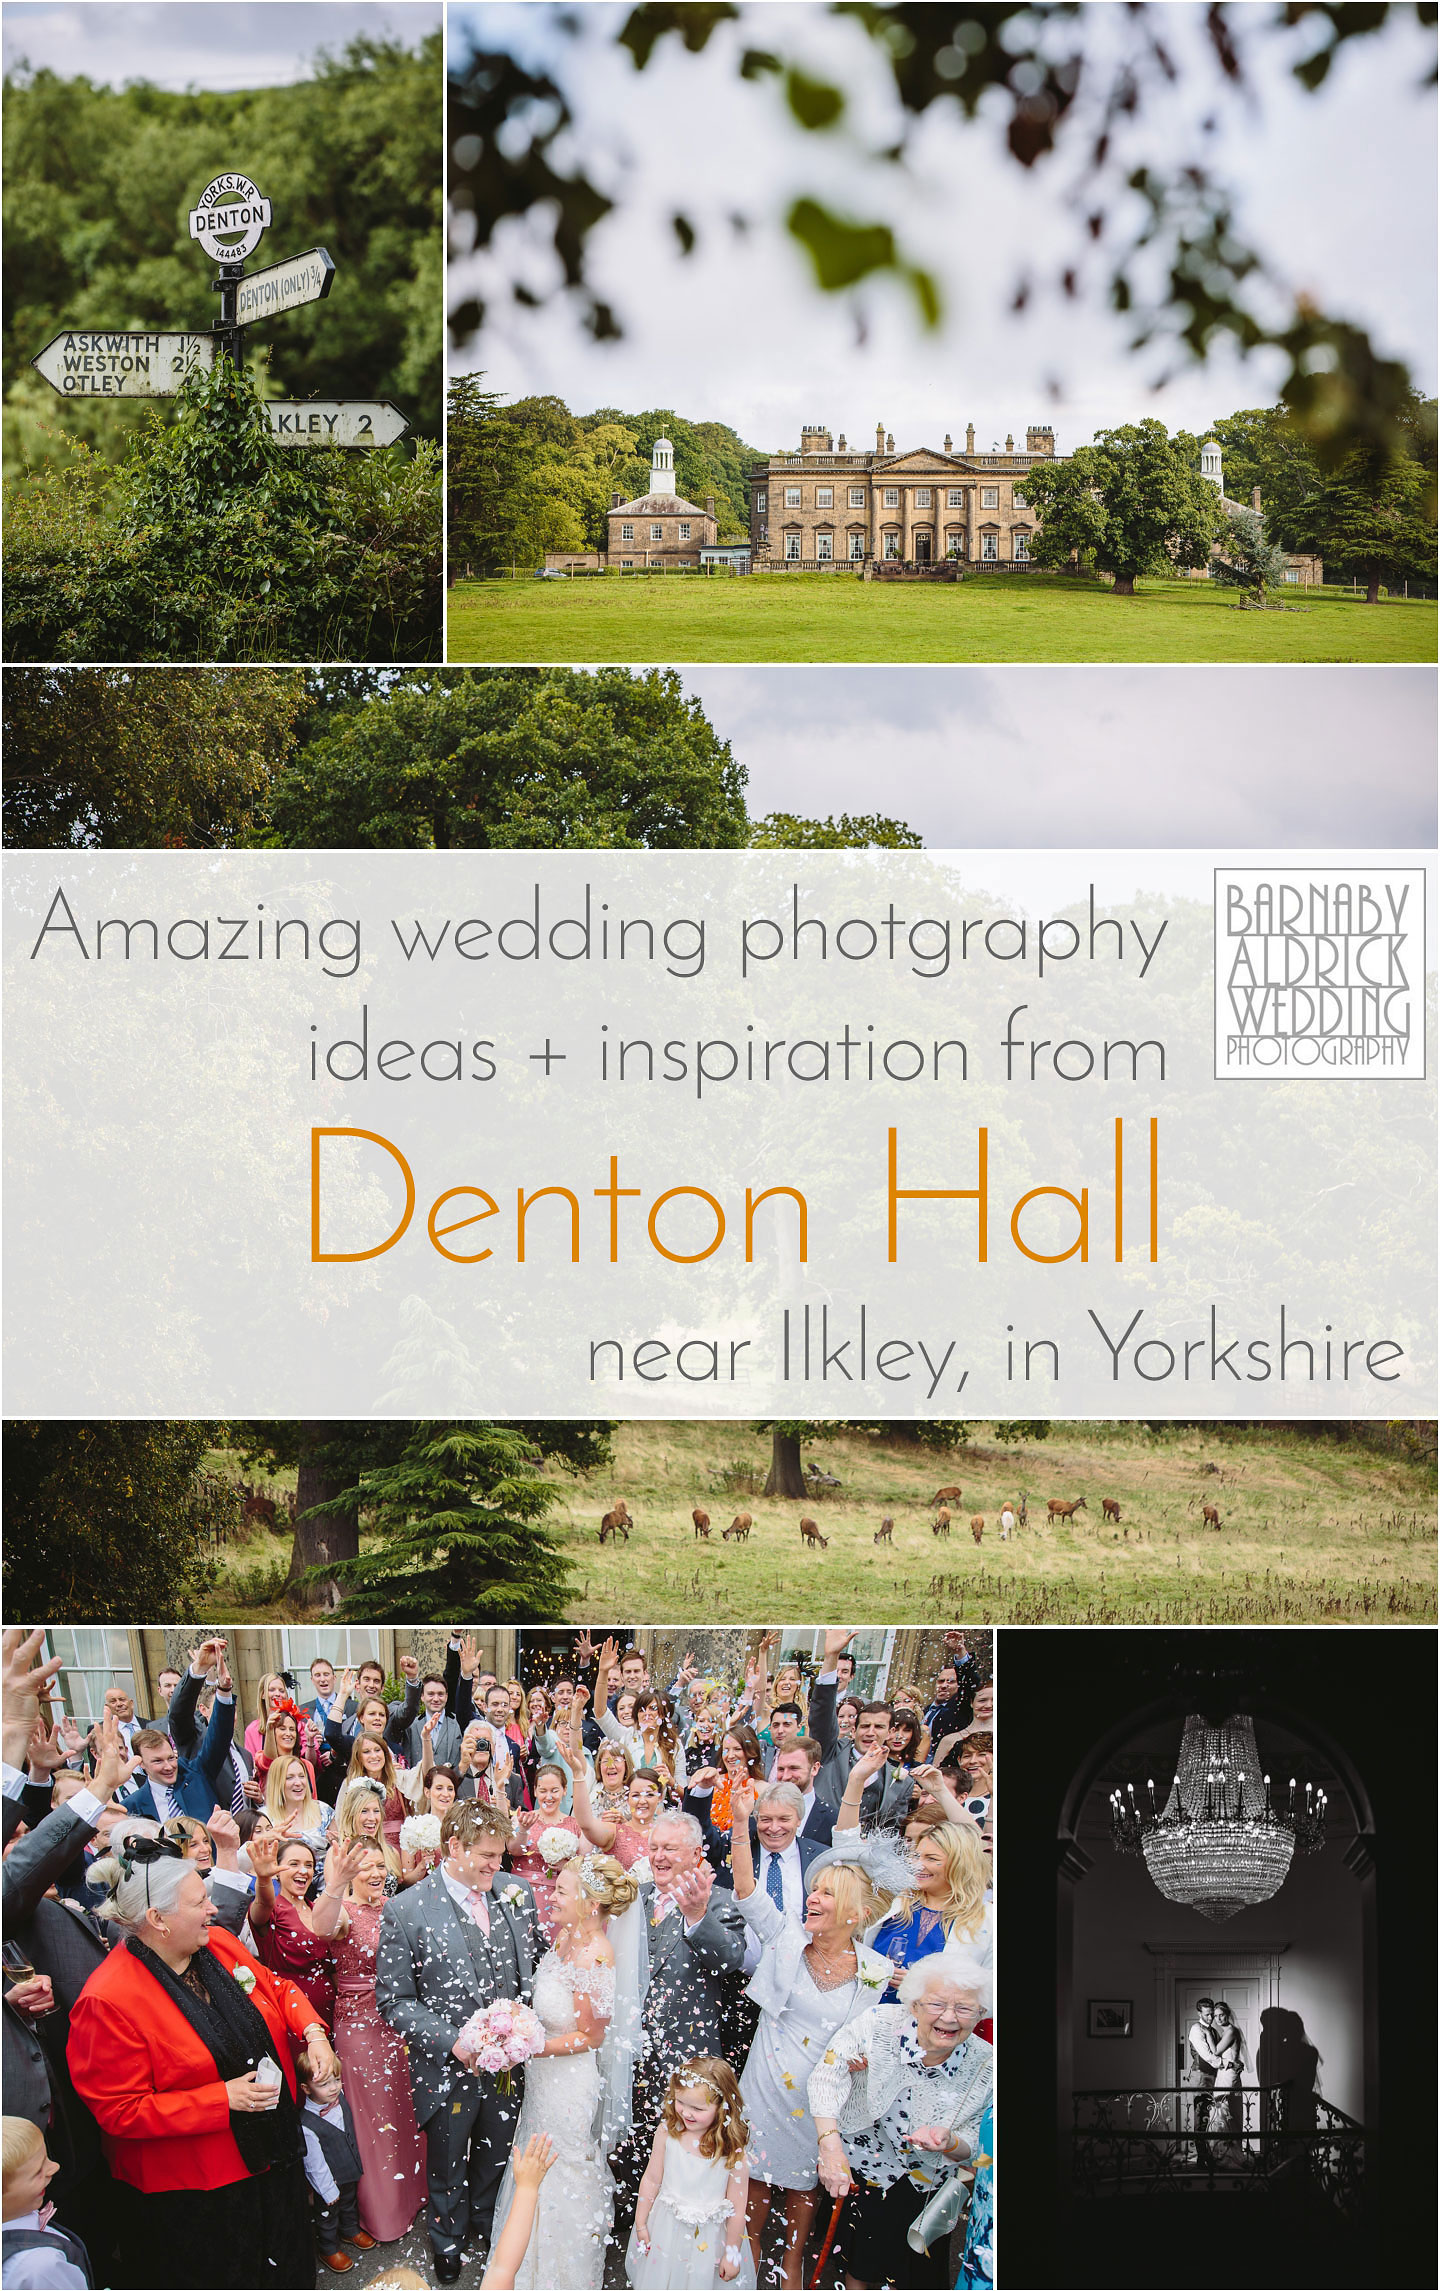 Amazing wedding photography ideas and inspiration at Denton Hall near Ilkley in Wharfedale in Yorkshire